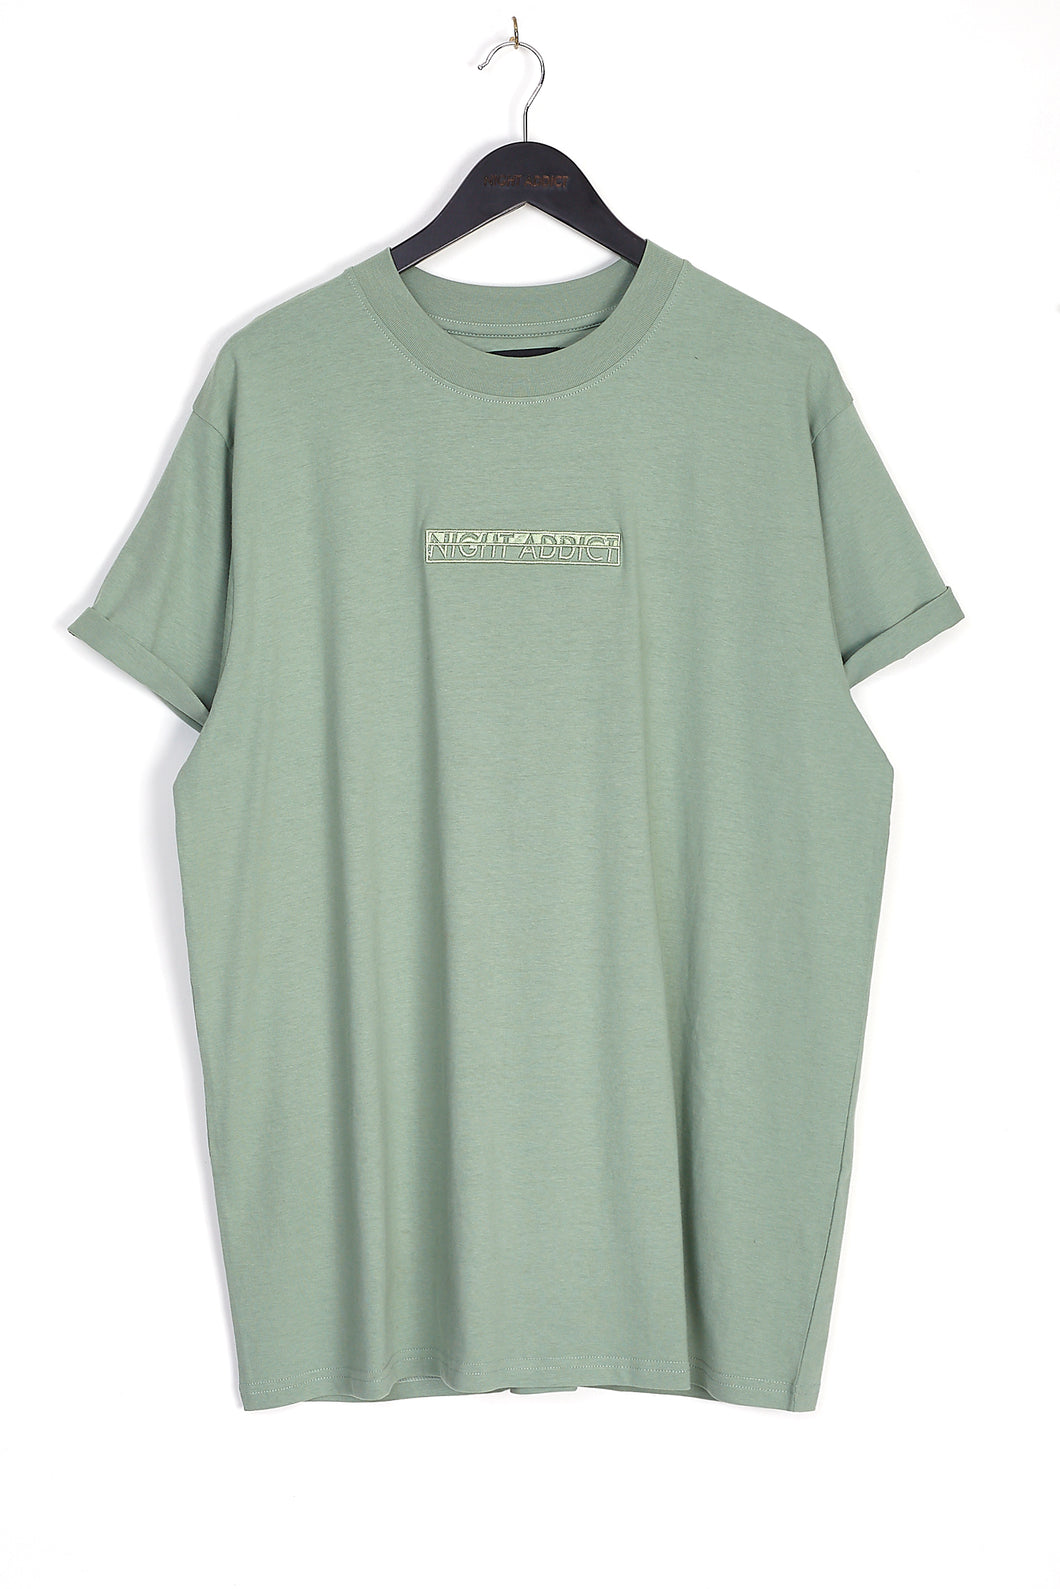 NIGHT ADDICT KHAKI EMBROIDERED LOGO T-SHIRT FRONT